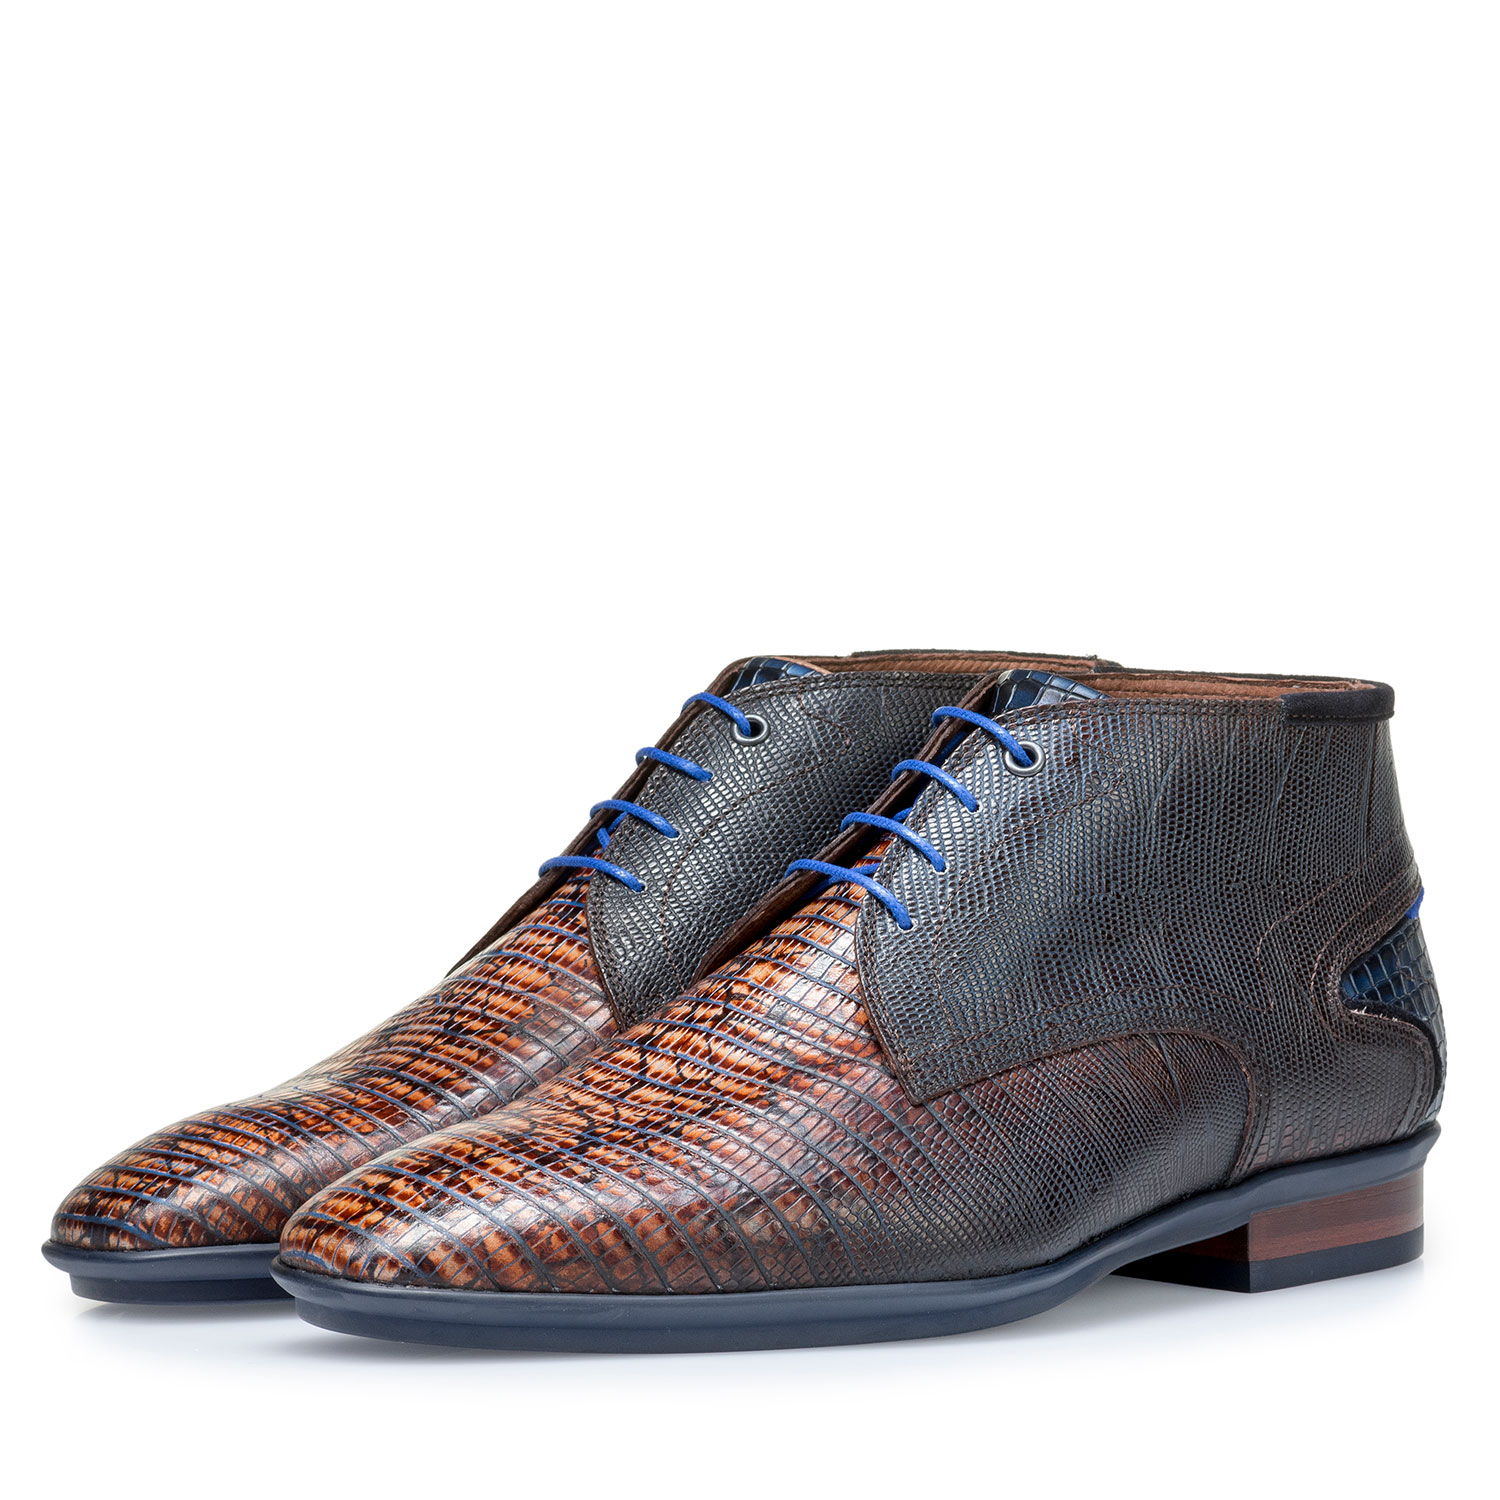 10131/10 - Cognac-coloured calf leather lace shoe with lizard print